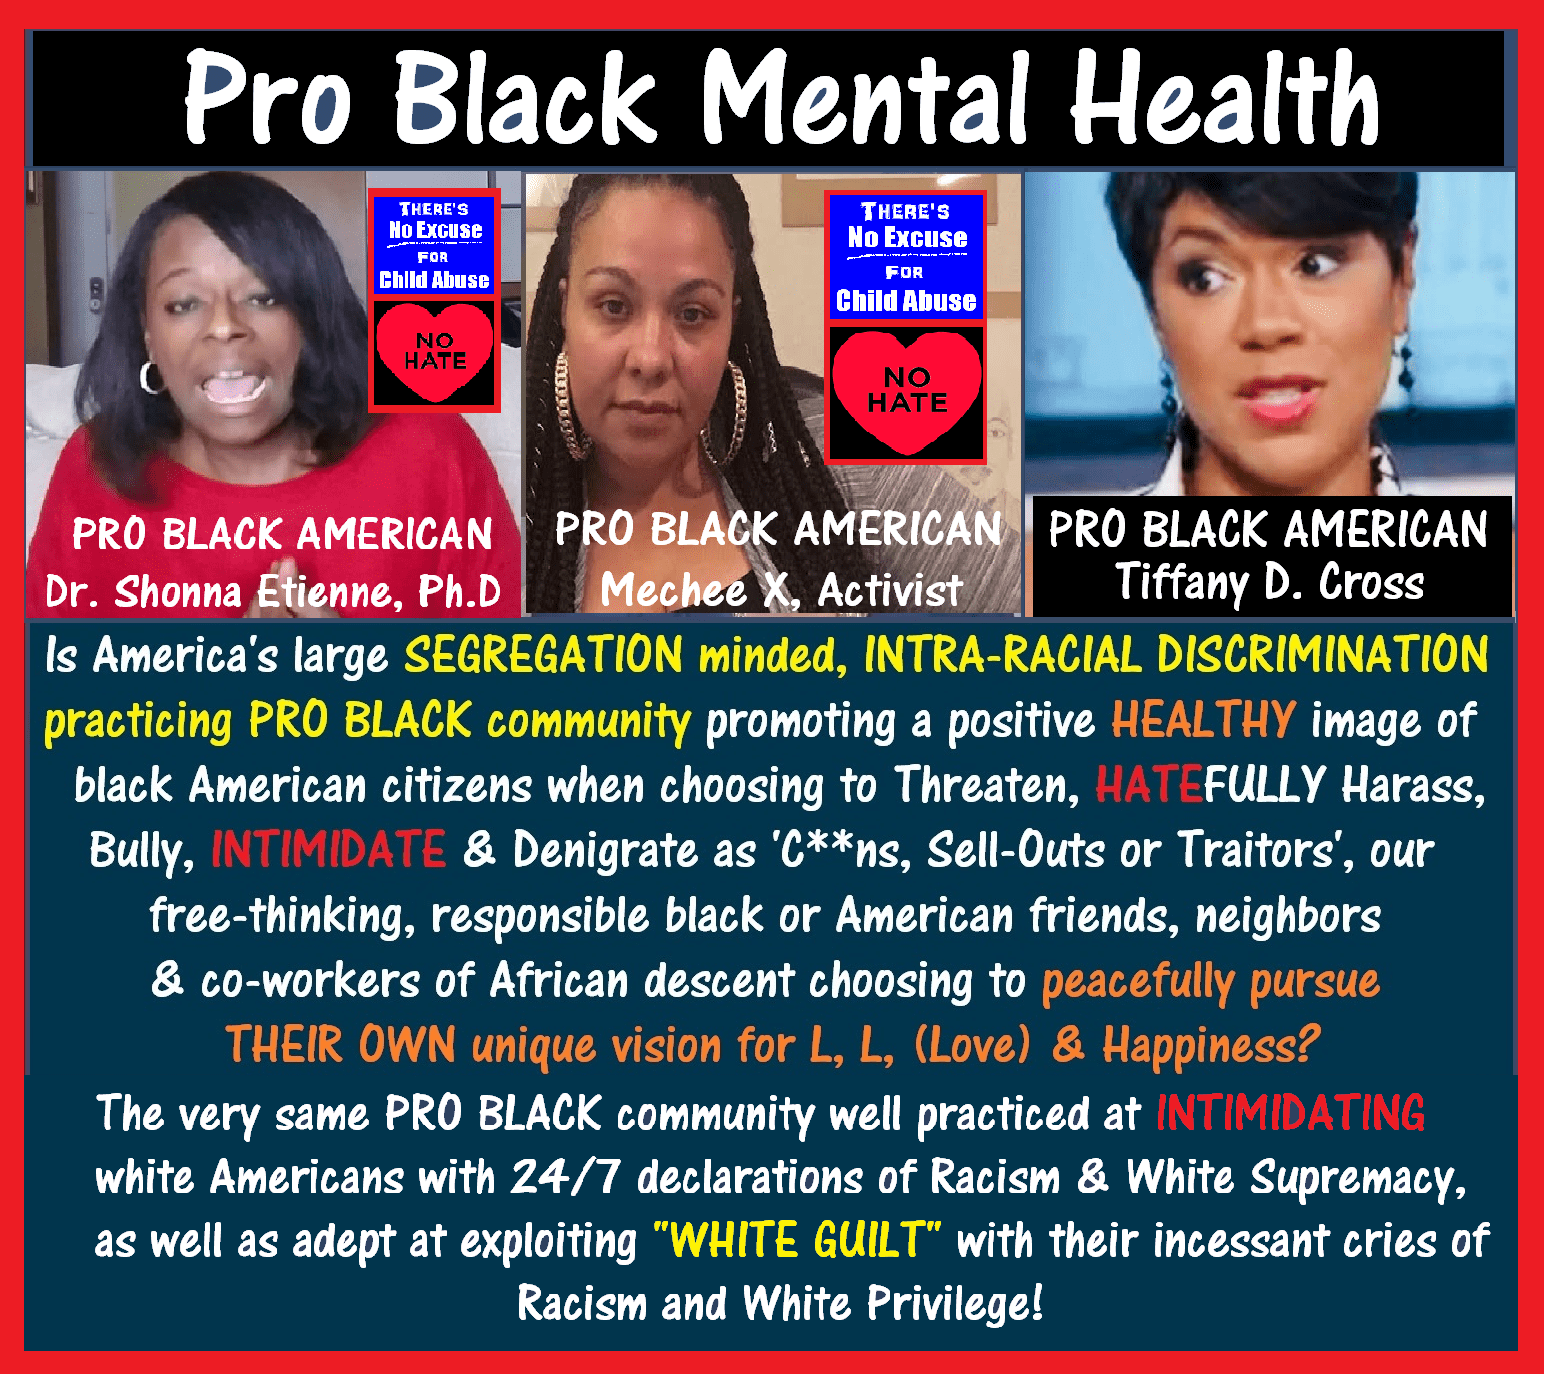 PRO BLACK Mental Health, tiffany cross.png